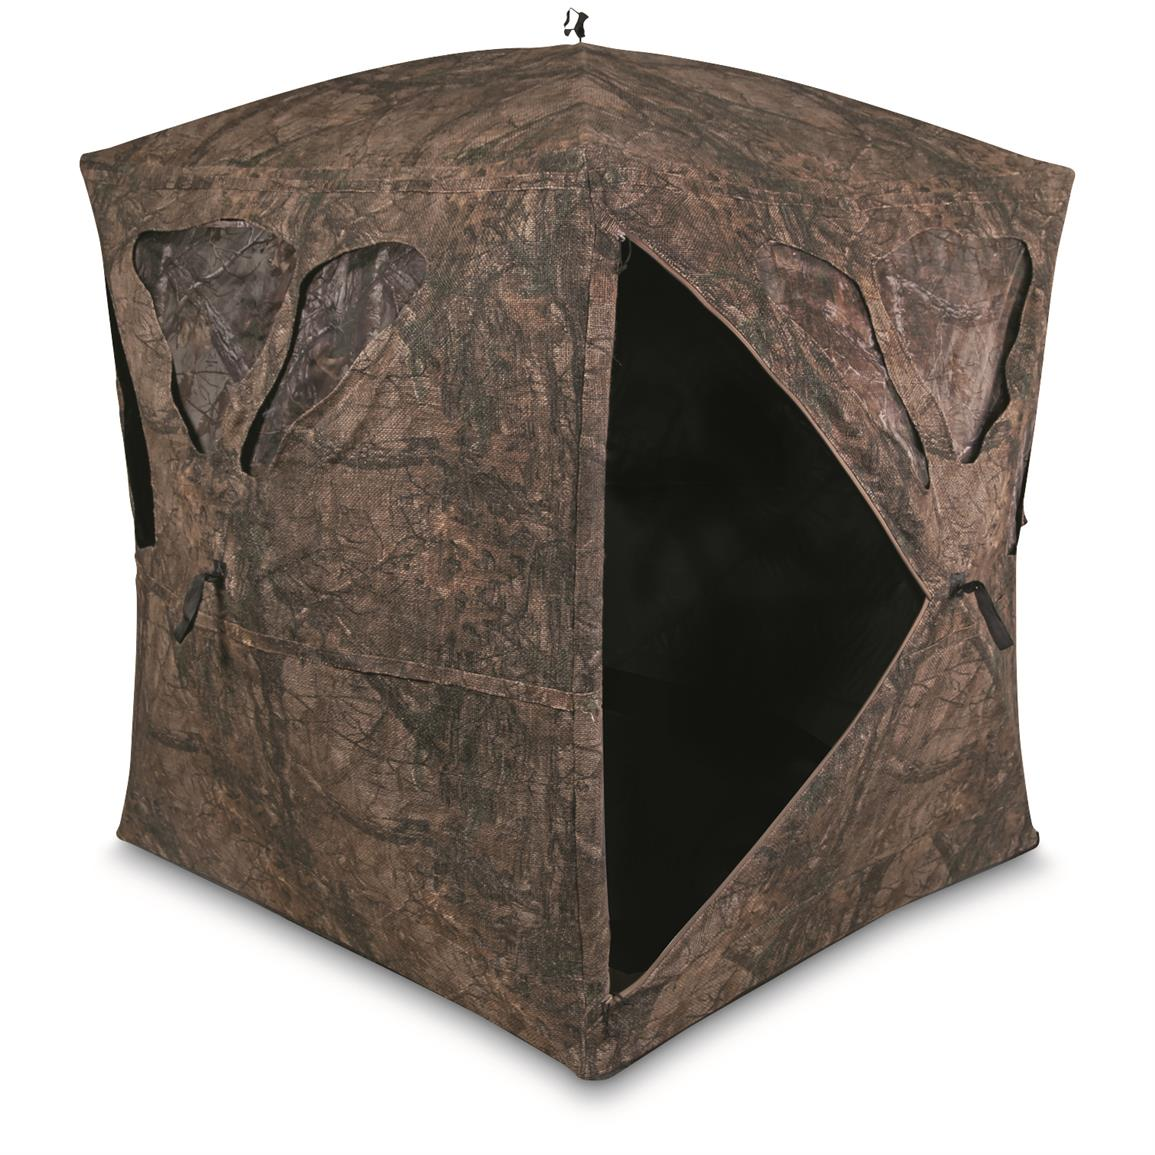 Dual-layer fabric shell with natural fiber exterior eliminates glare and sheen